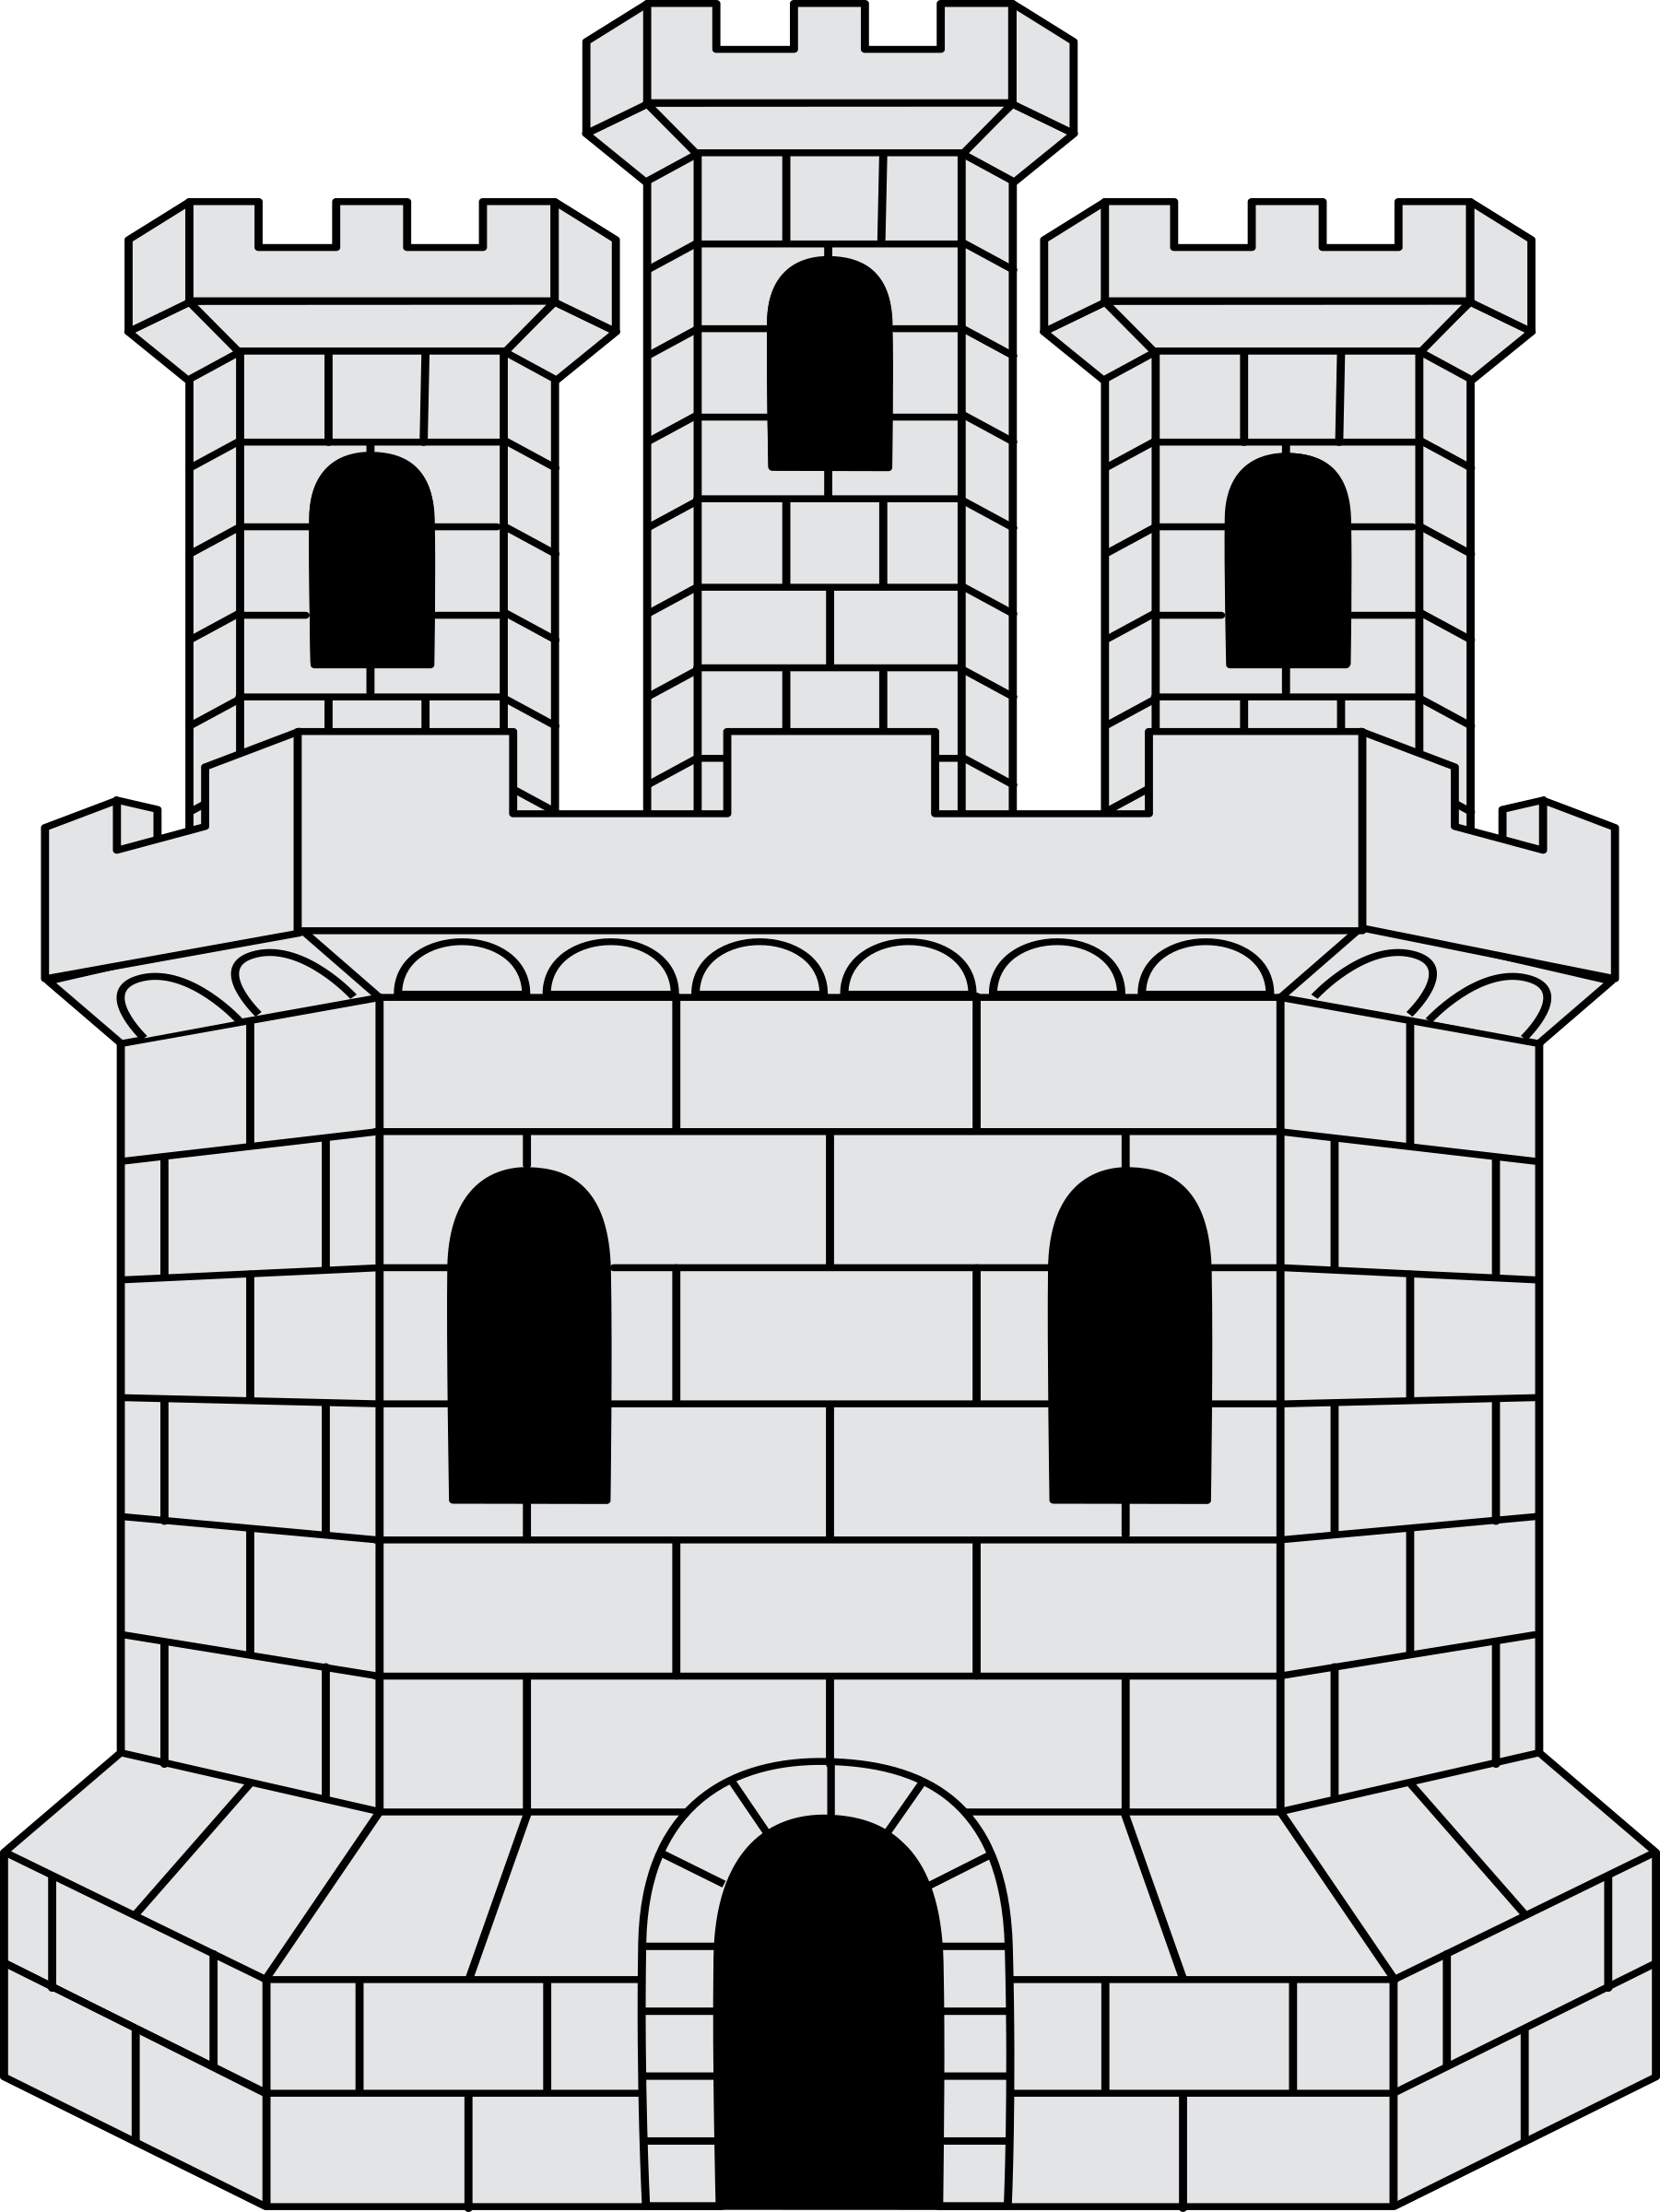 jpg free download Castle free on dumielauxepices. Brick clipart black and white